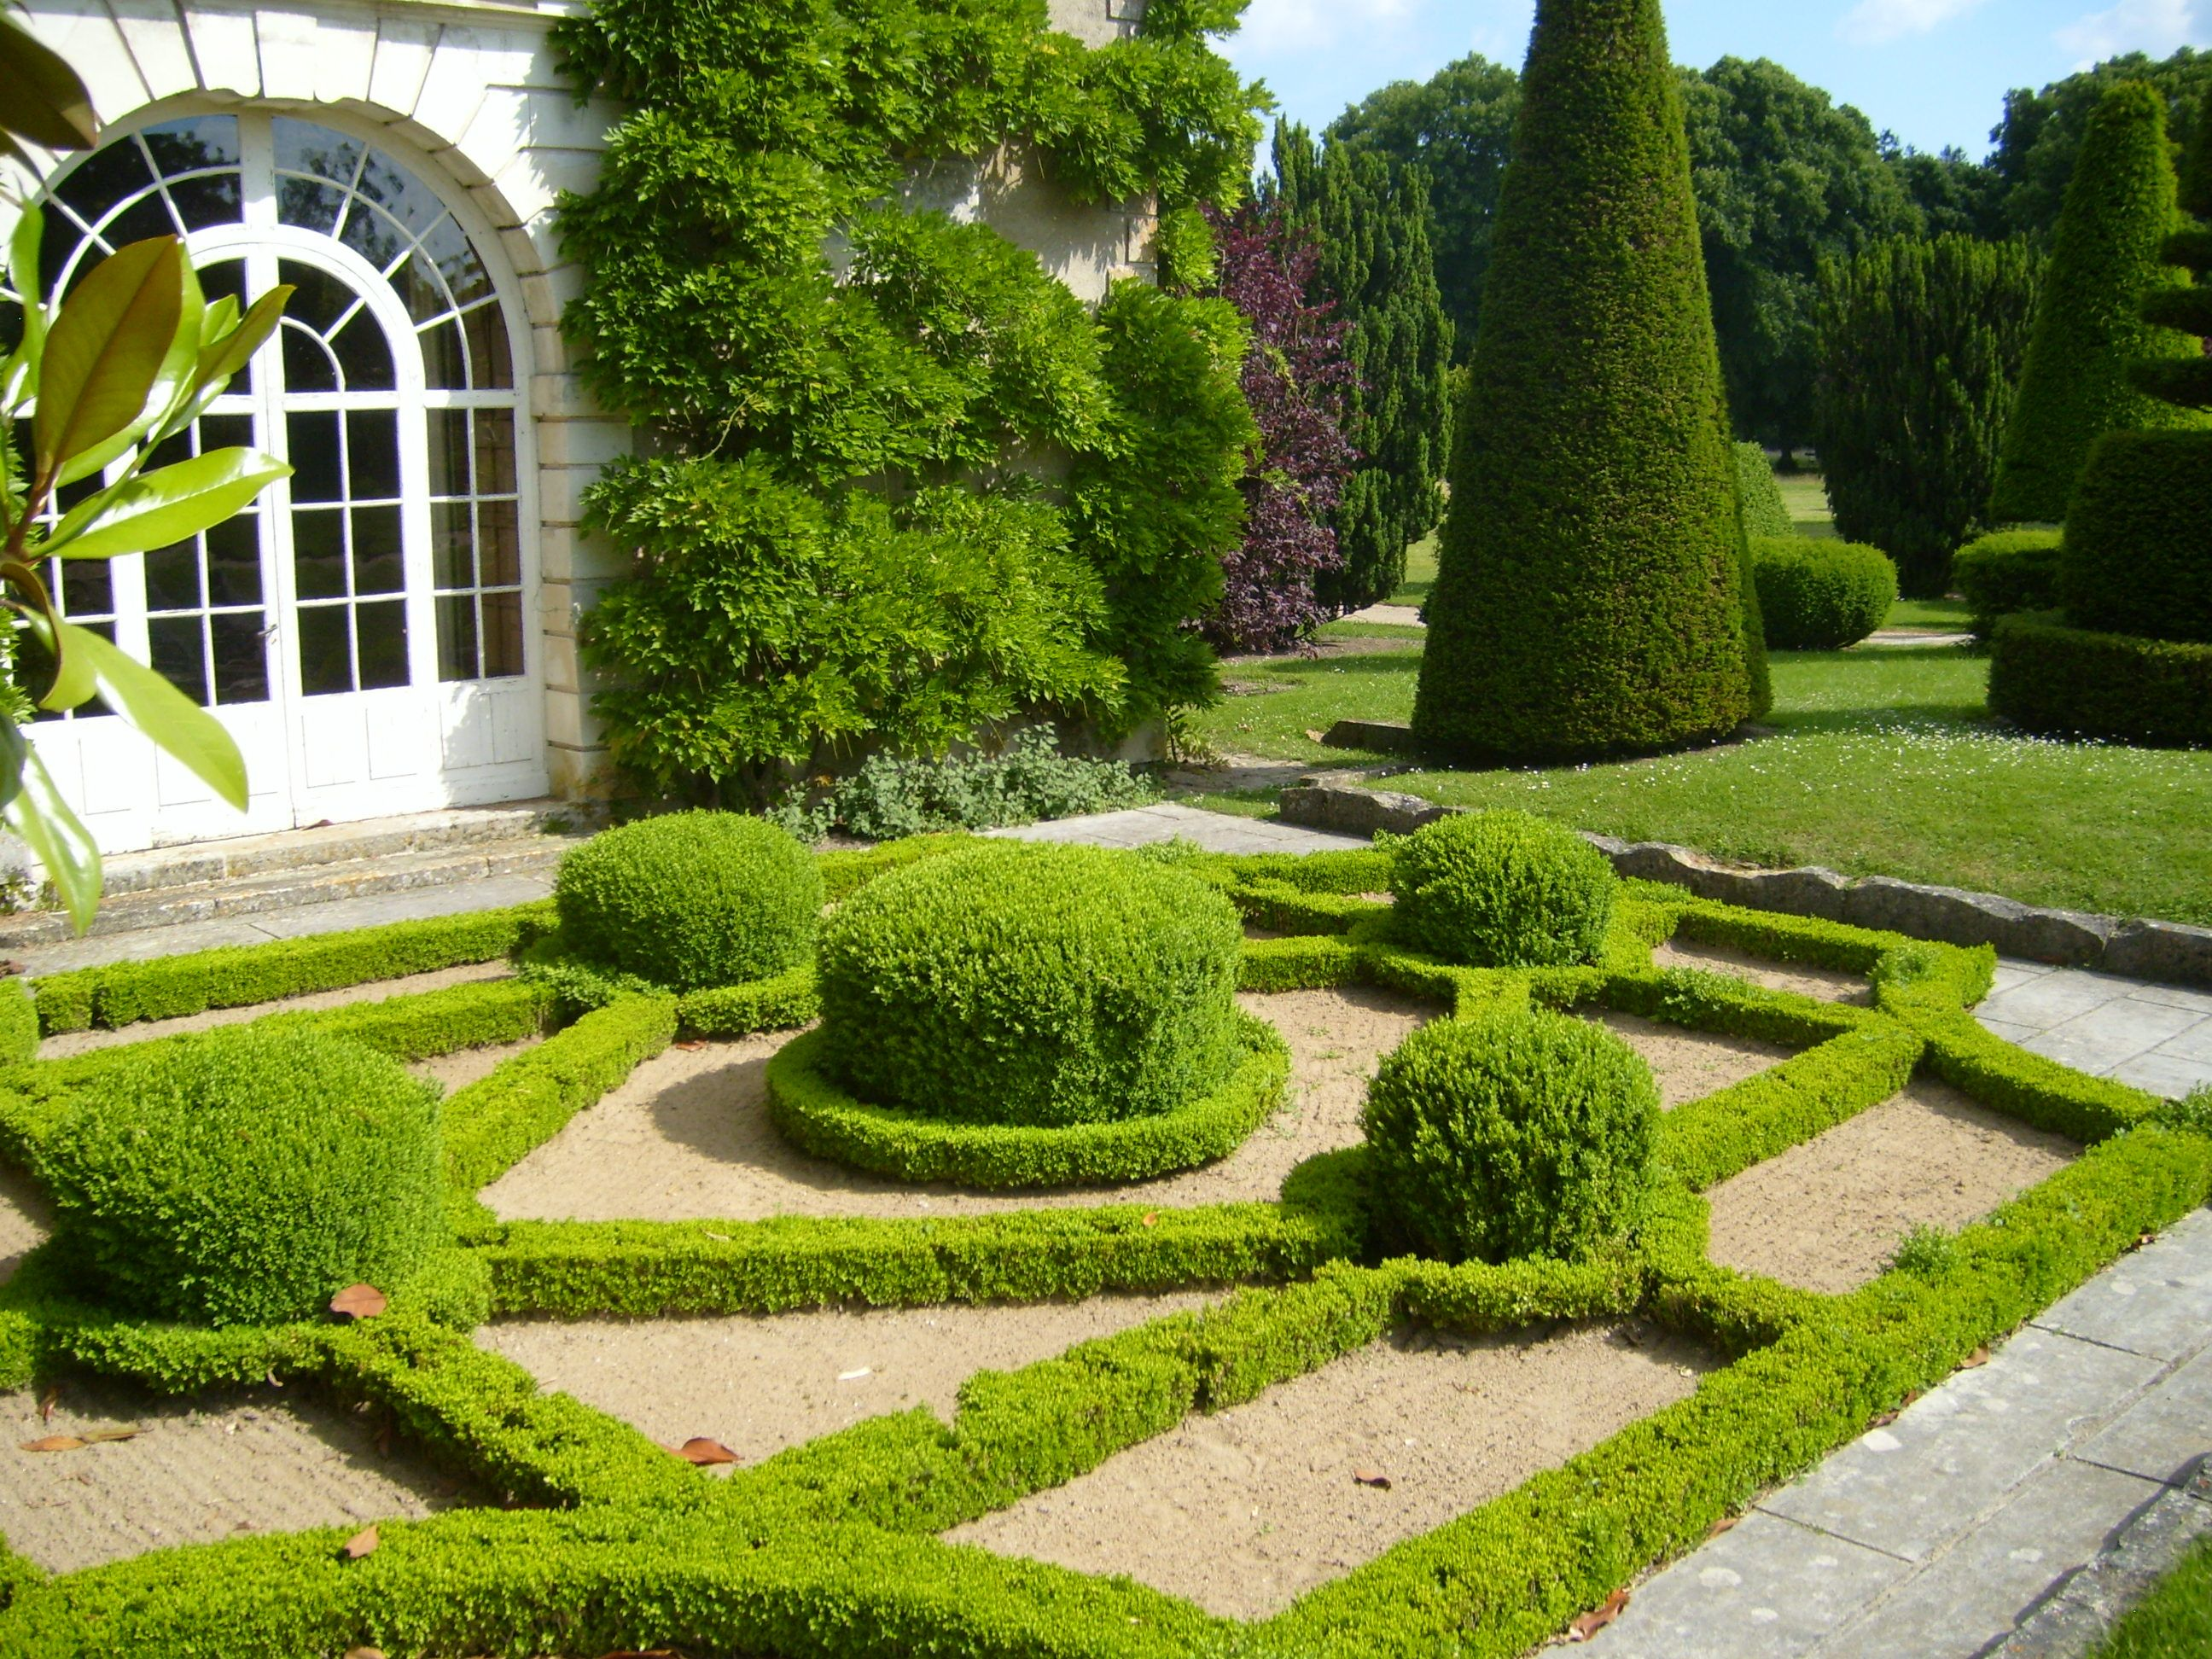 17 Best 1000 images about French Gardens on Pinterest Gardens